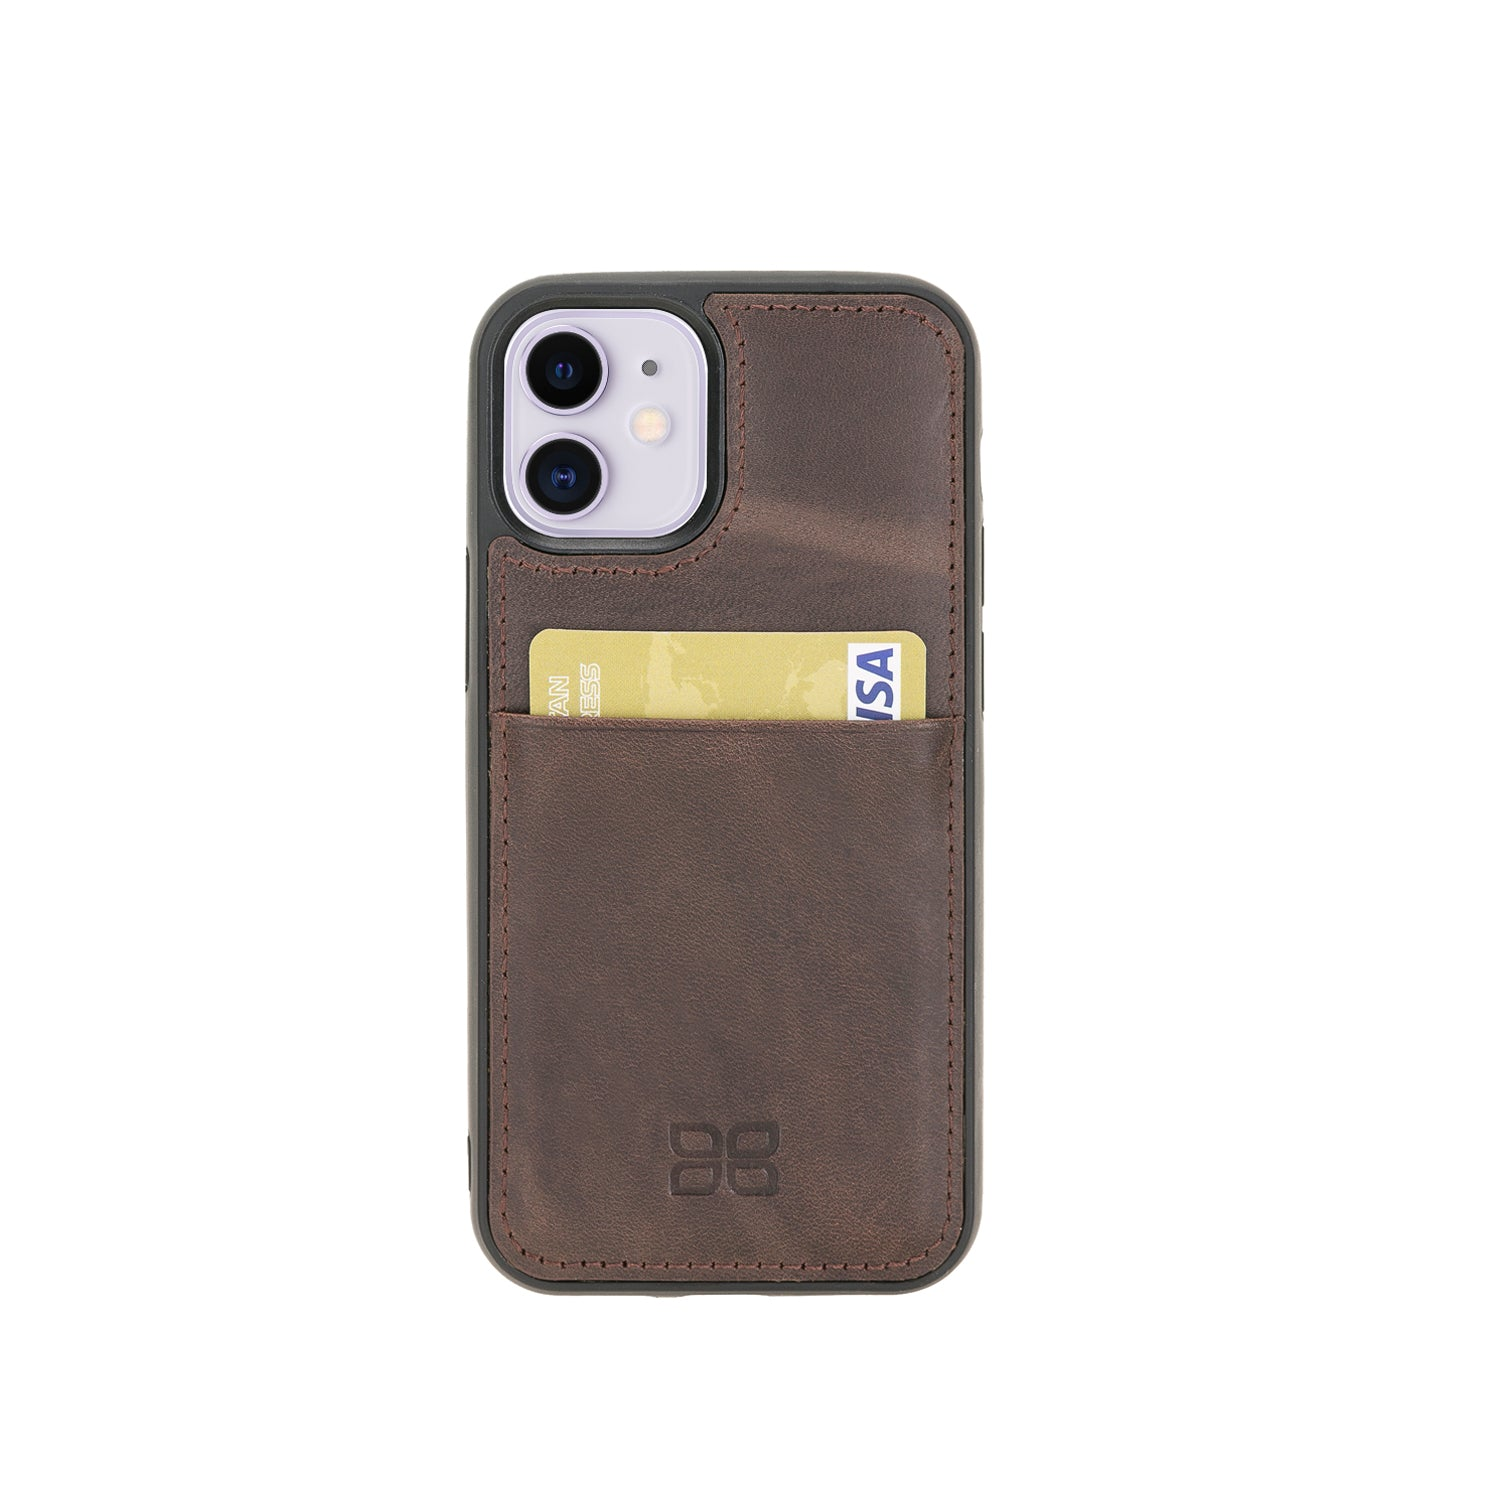 "Flex Cover Leather Back Case with Card Holder for iPhone 12 Mini (5.4"") - BROWN - saracleather"